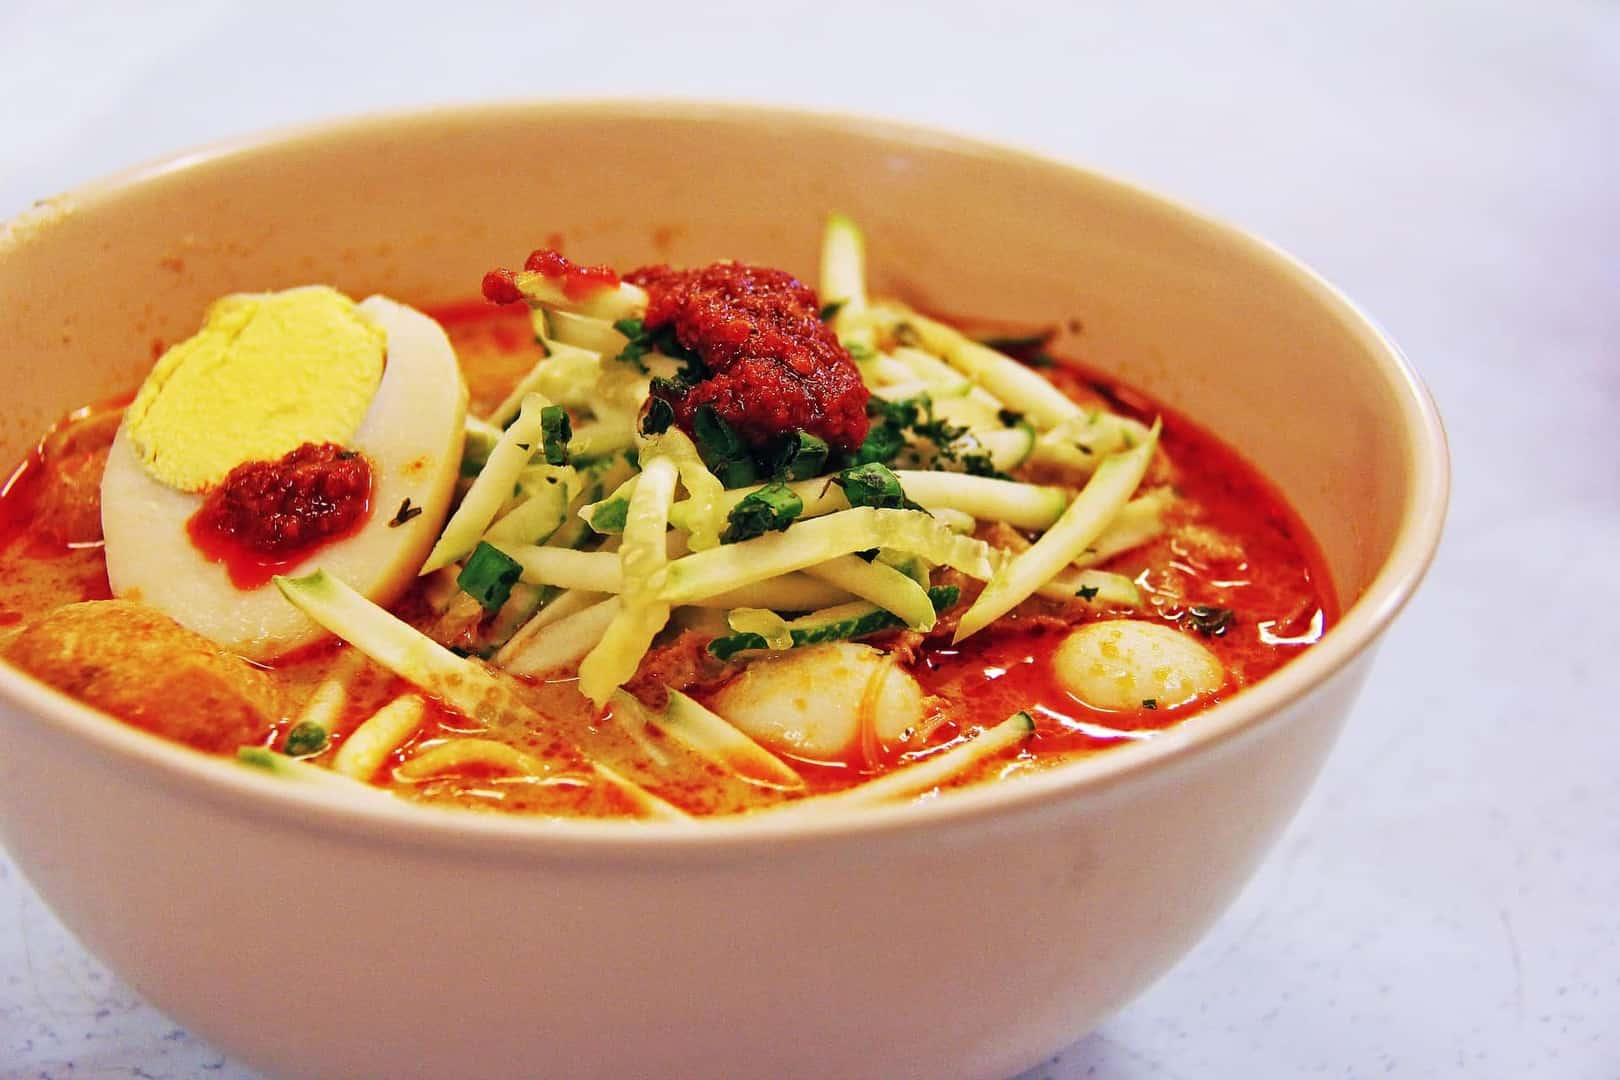 Laksa, a spicy noodle soup, is another favorite in Singapore